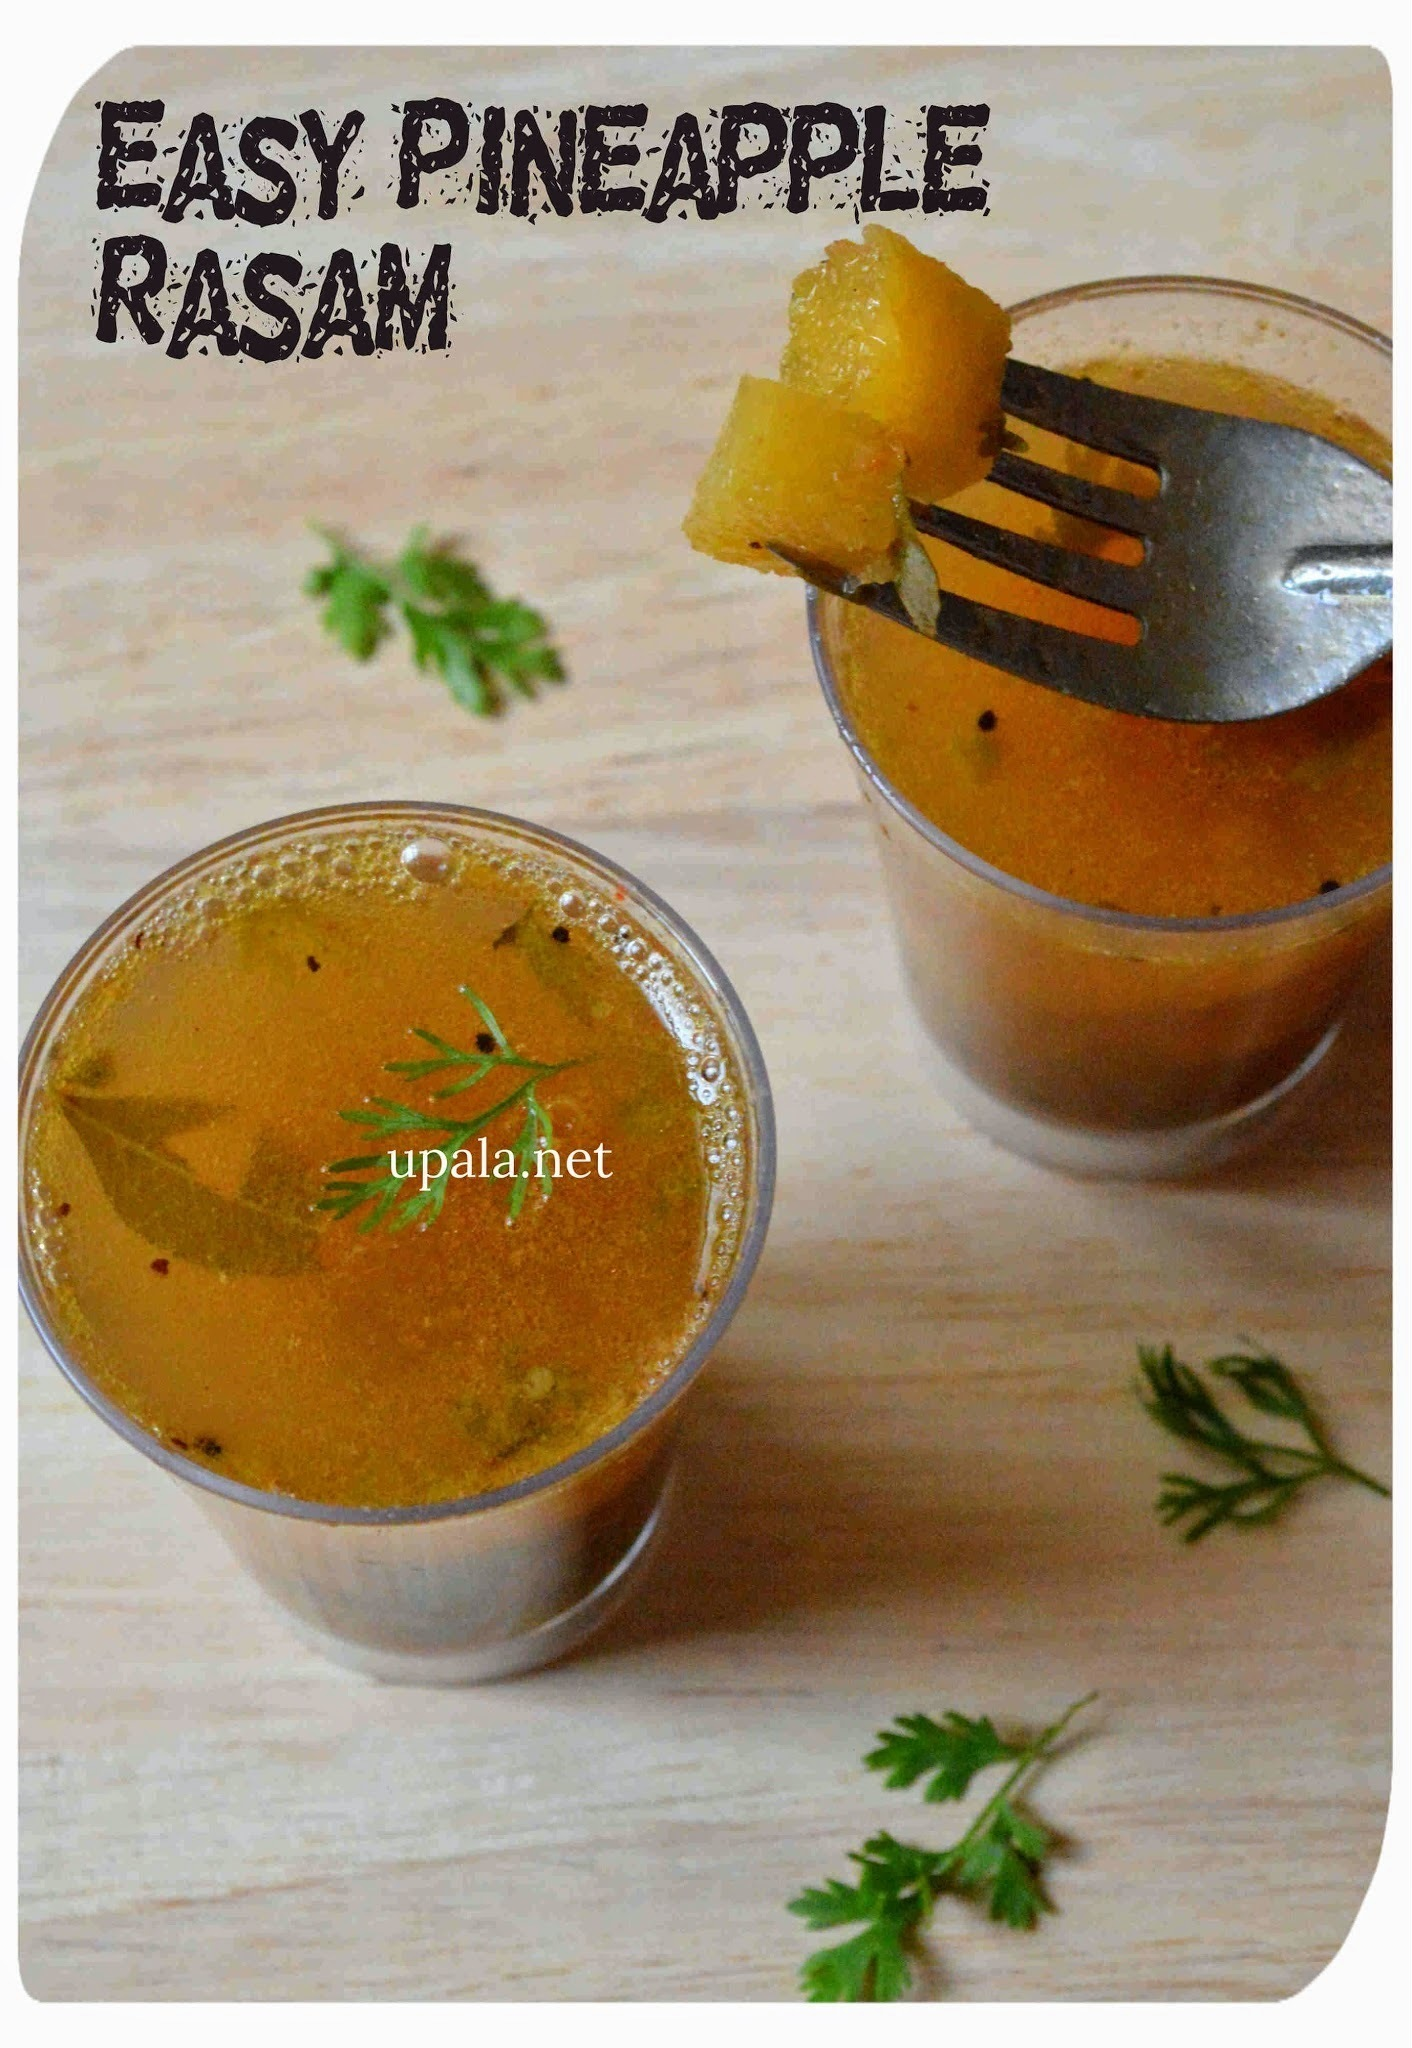 Easy Pineapple Rasam